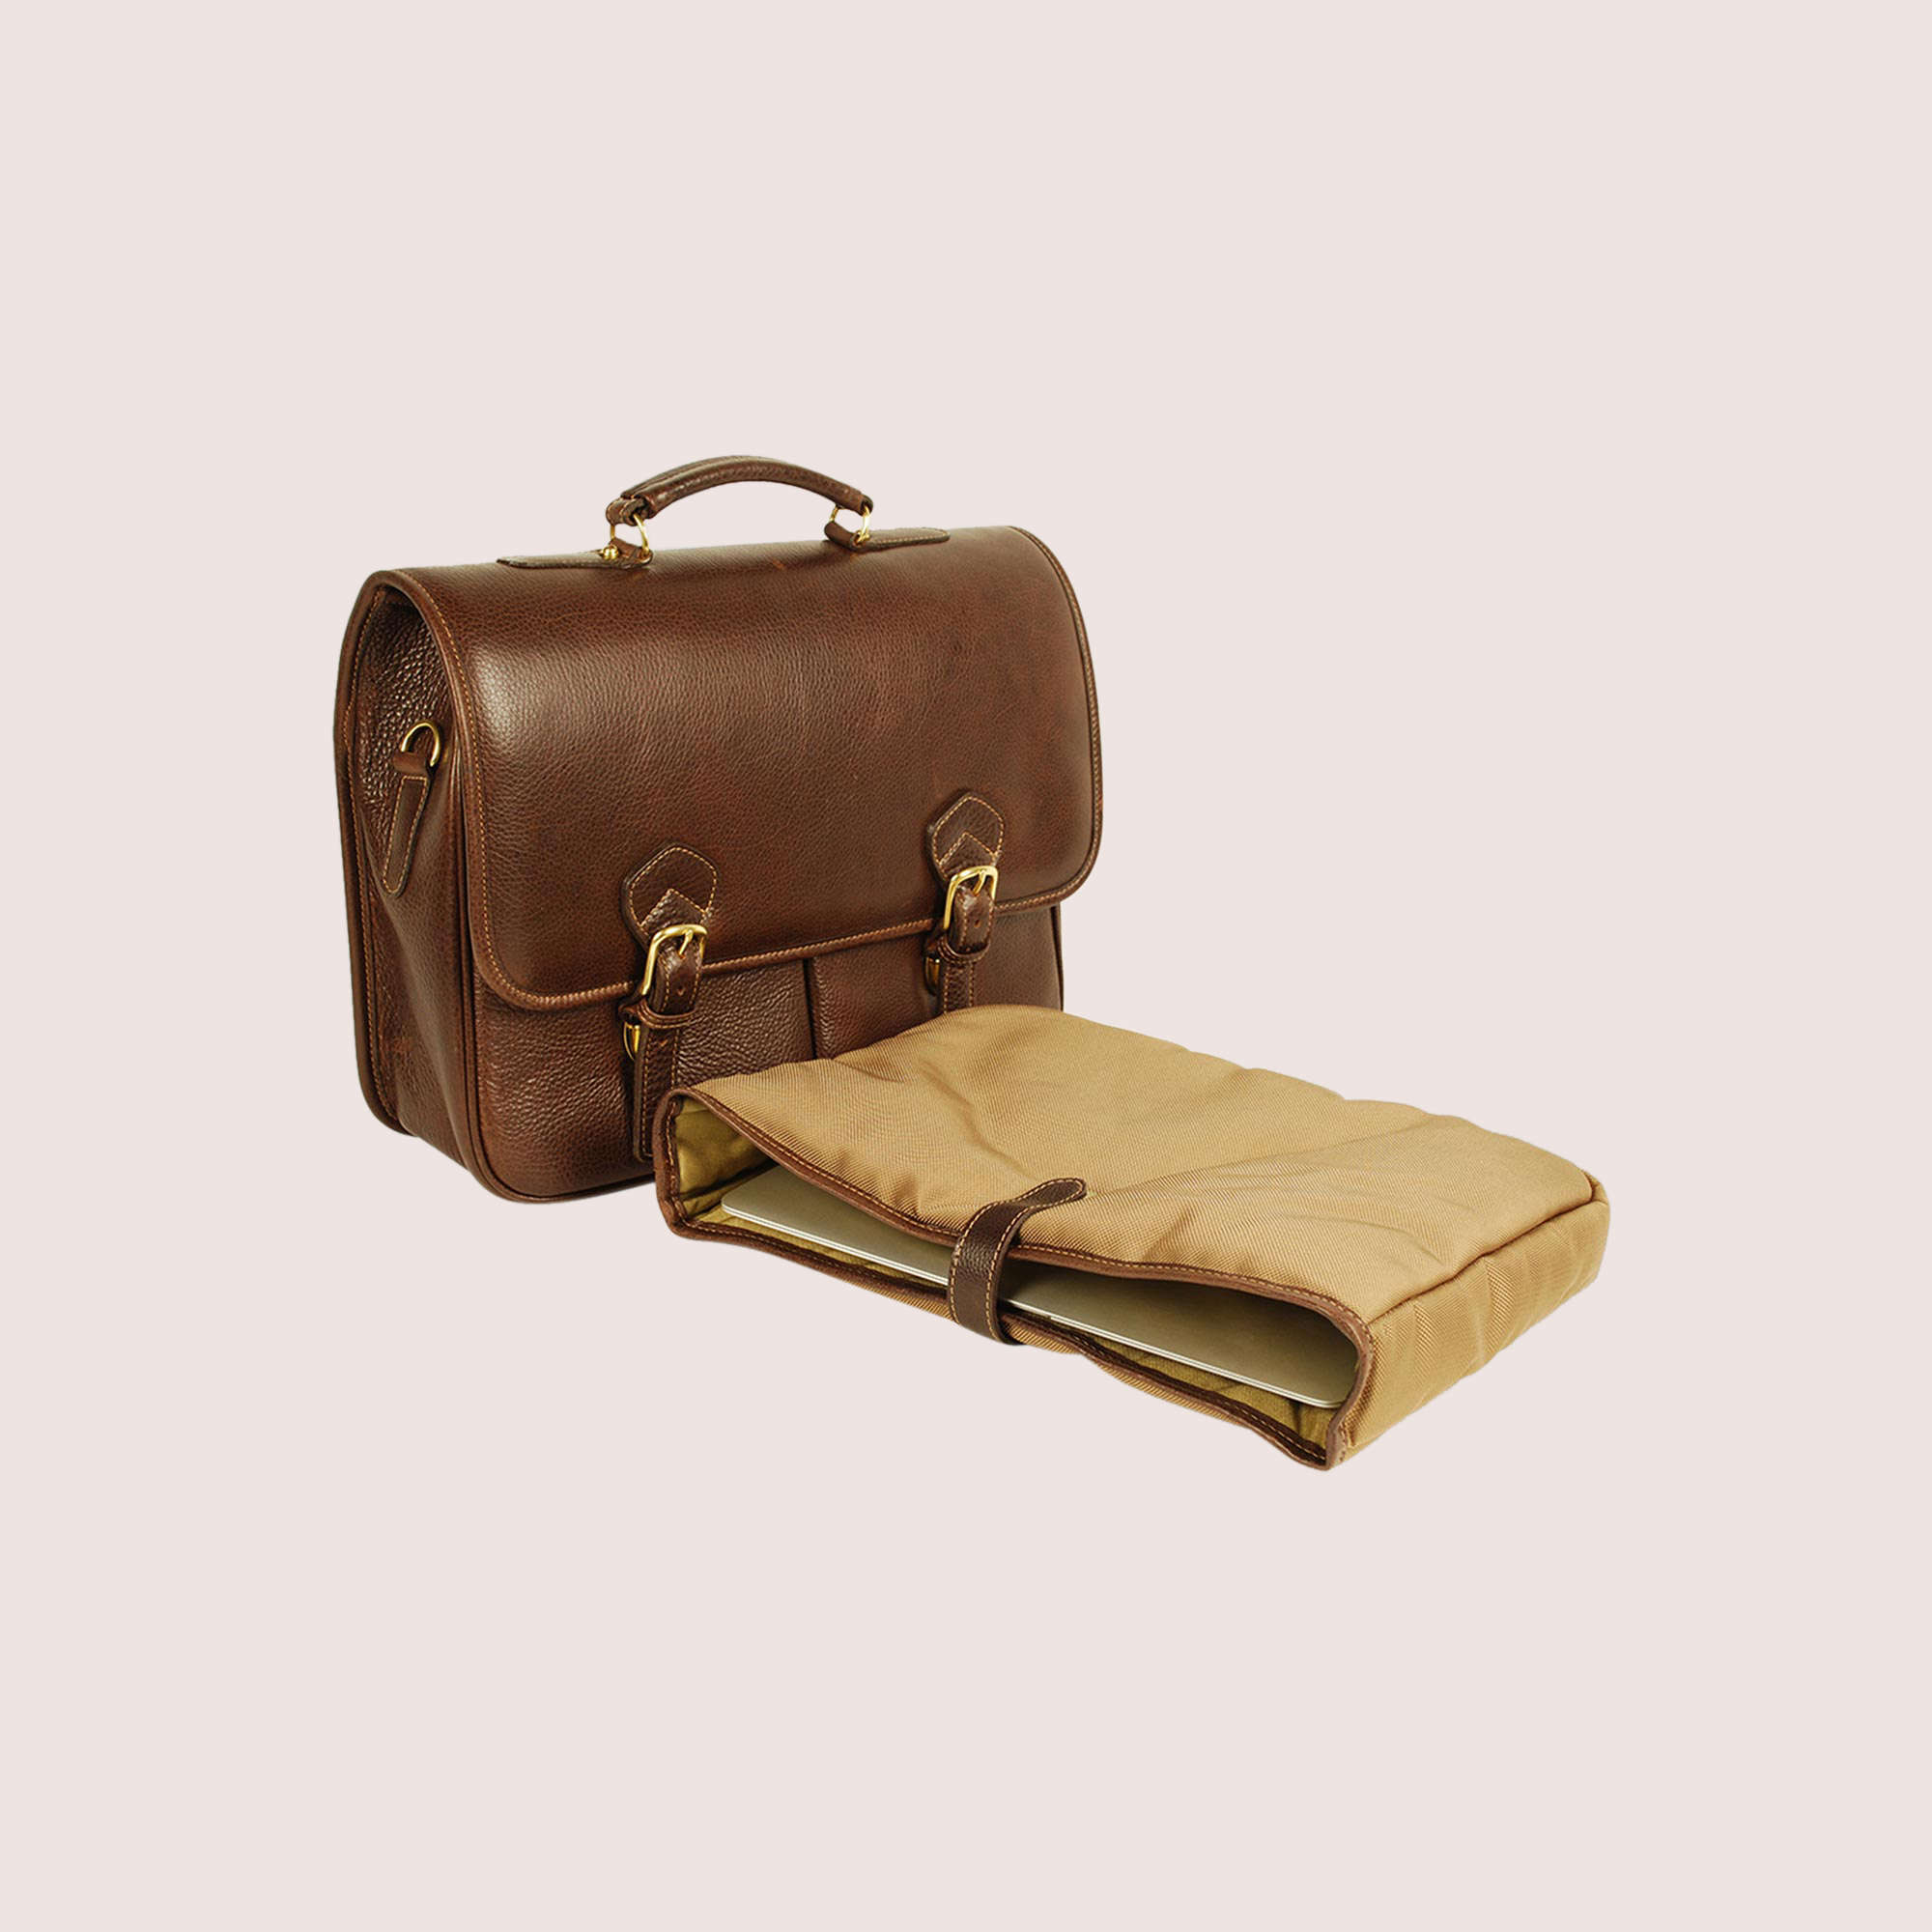 William Briefcase with laptop case